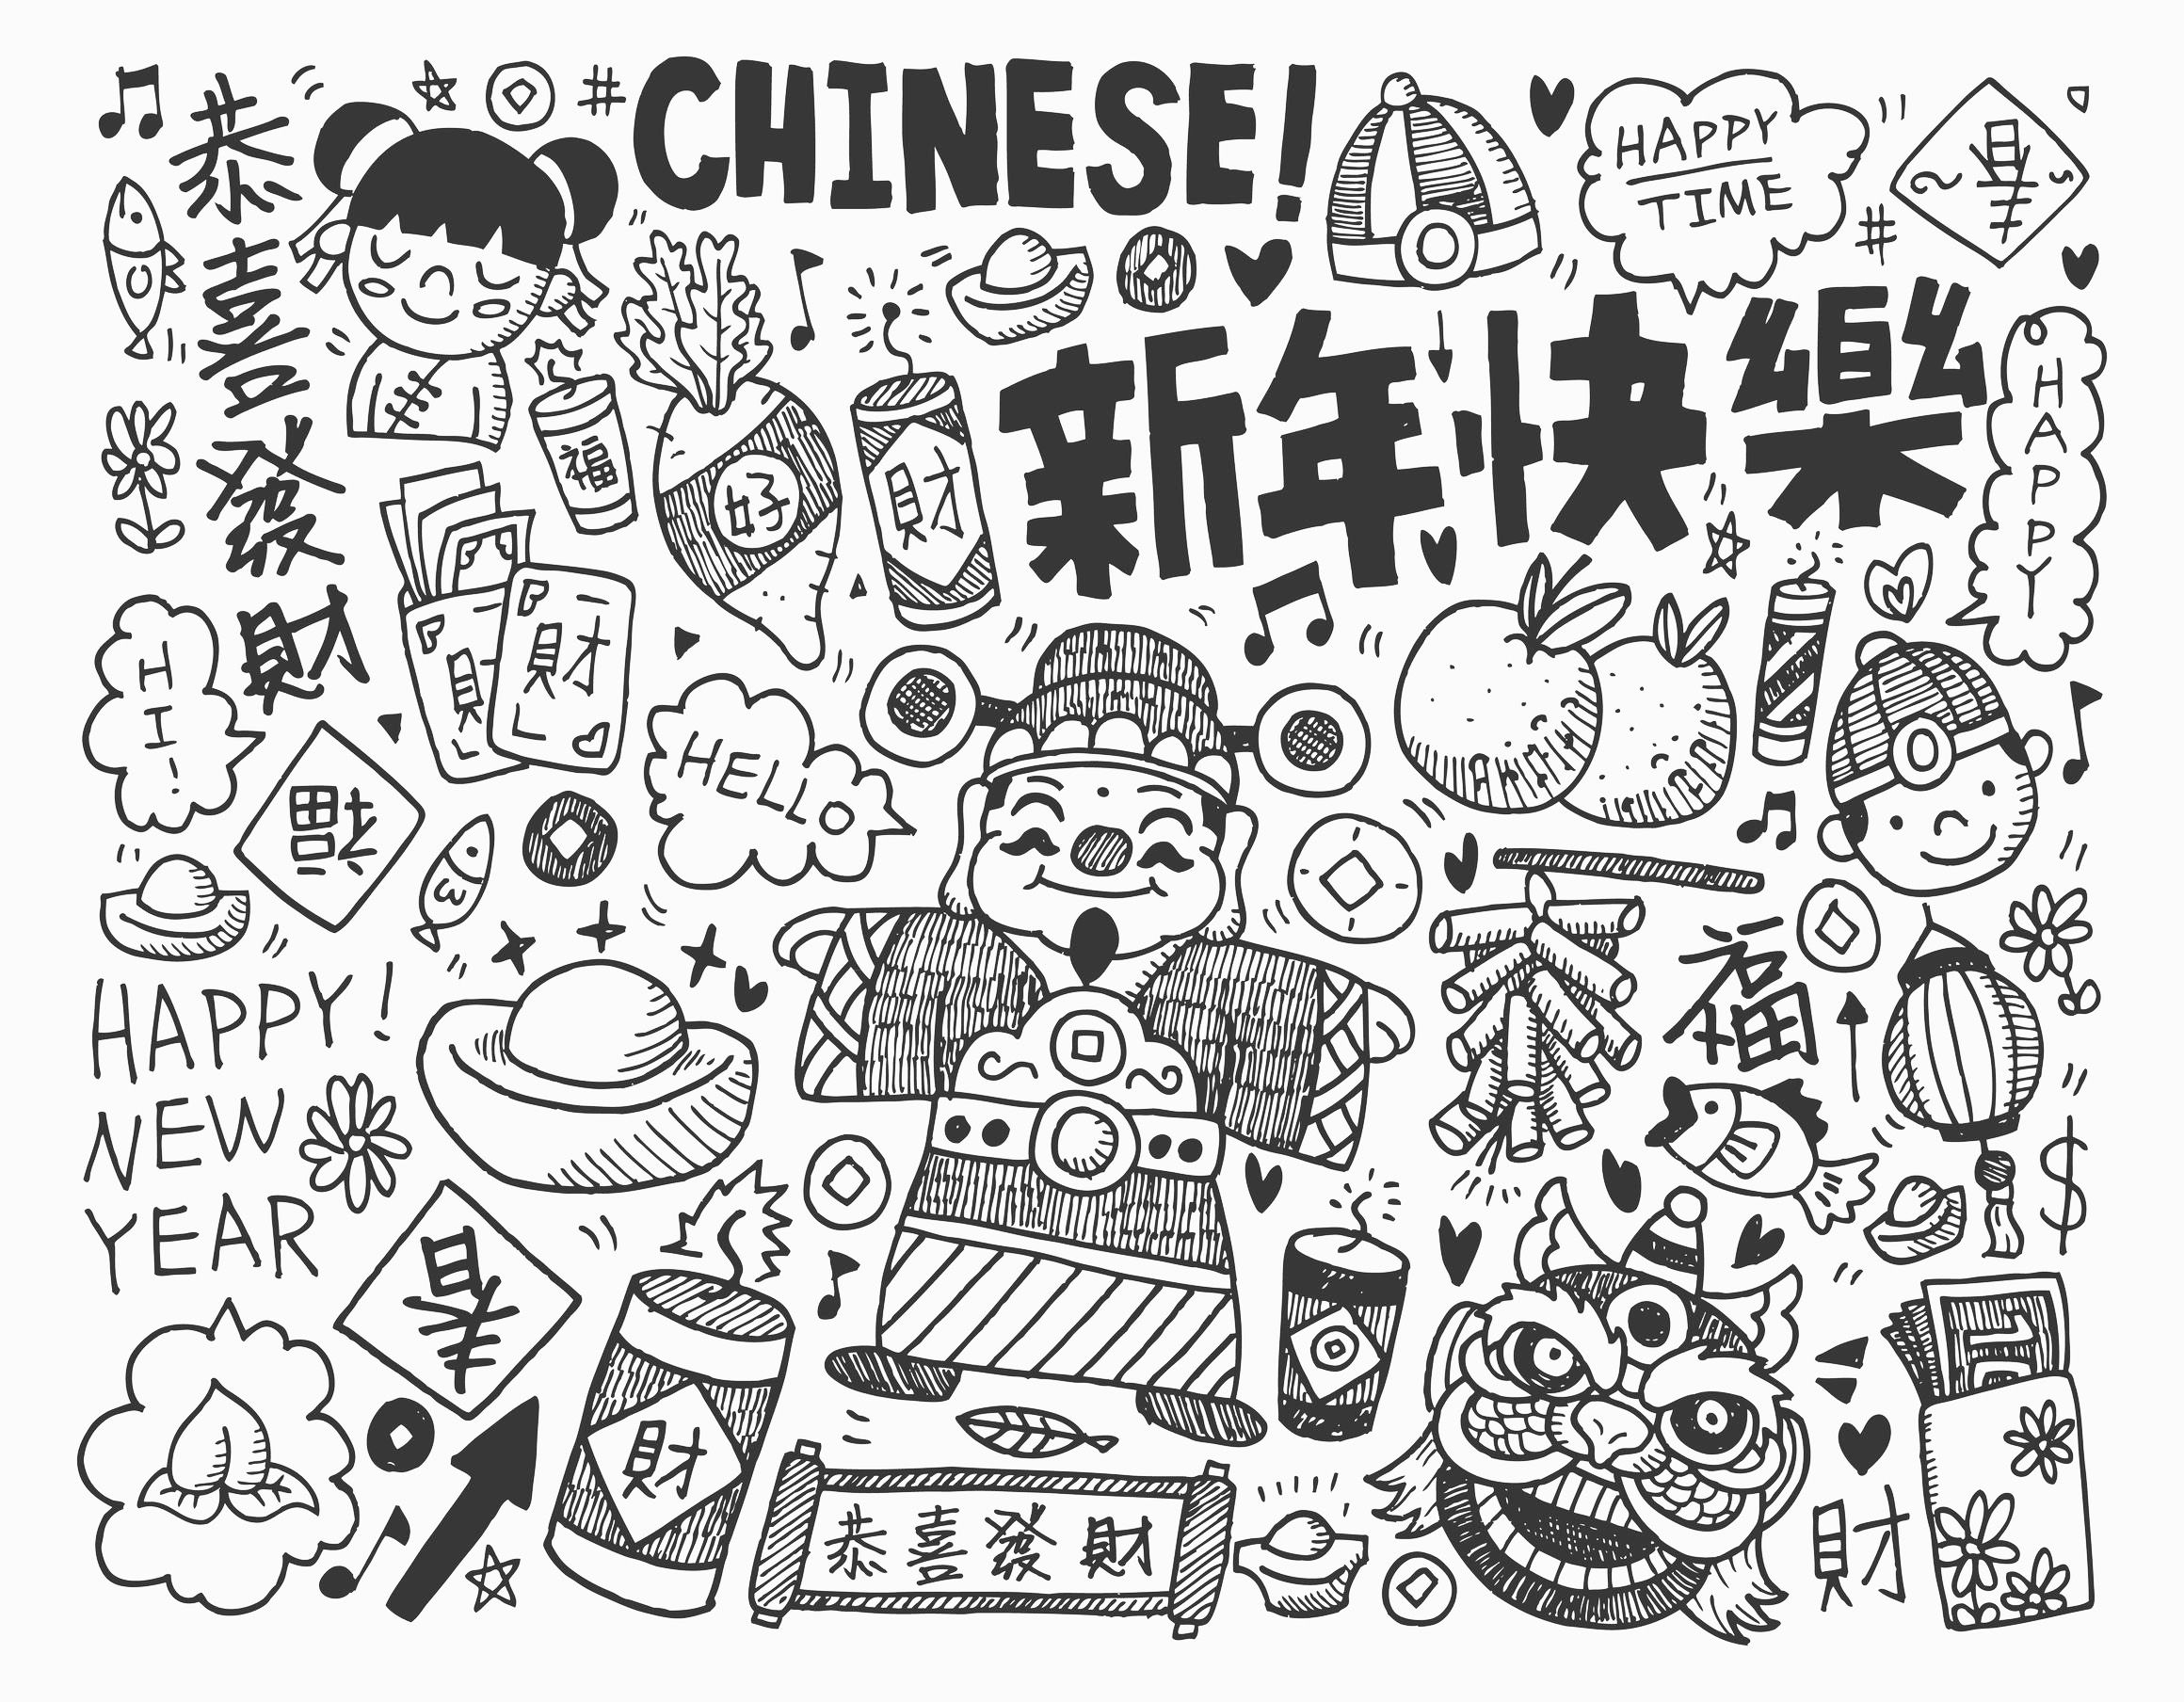 Free coloring pages chinese new year - A Drawing Doodle Style To Celebrate De Chinese New Year Source 123rf